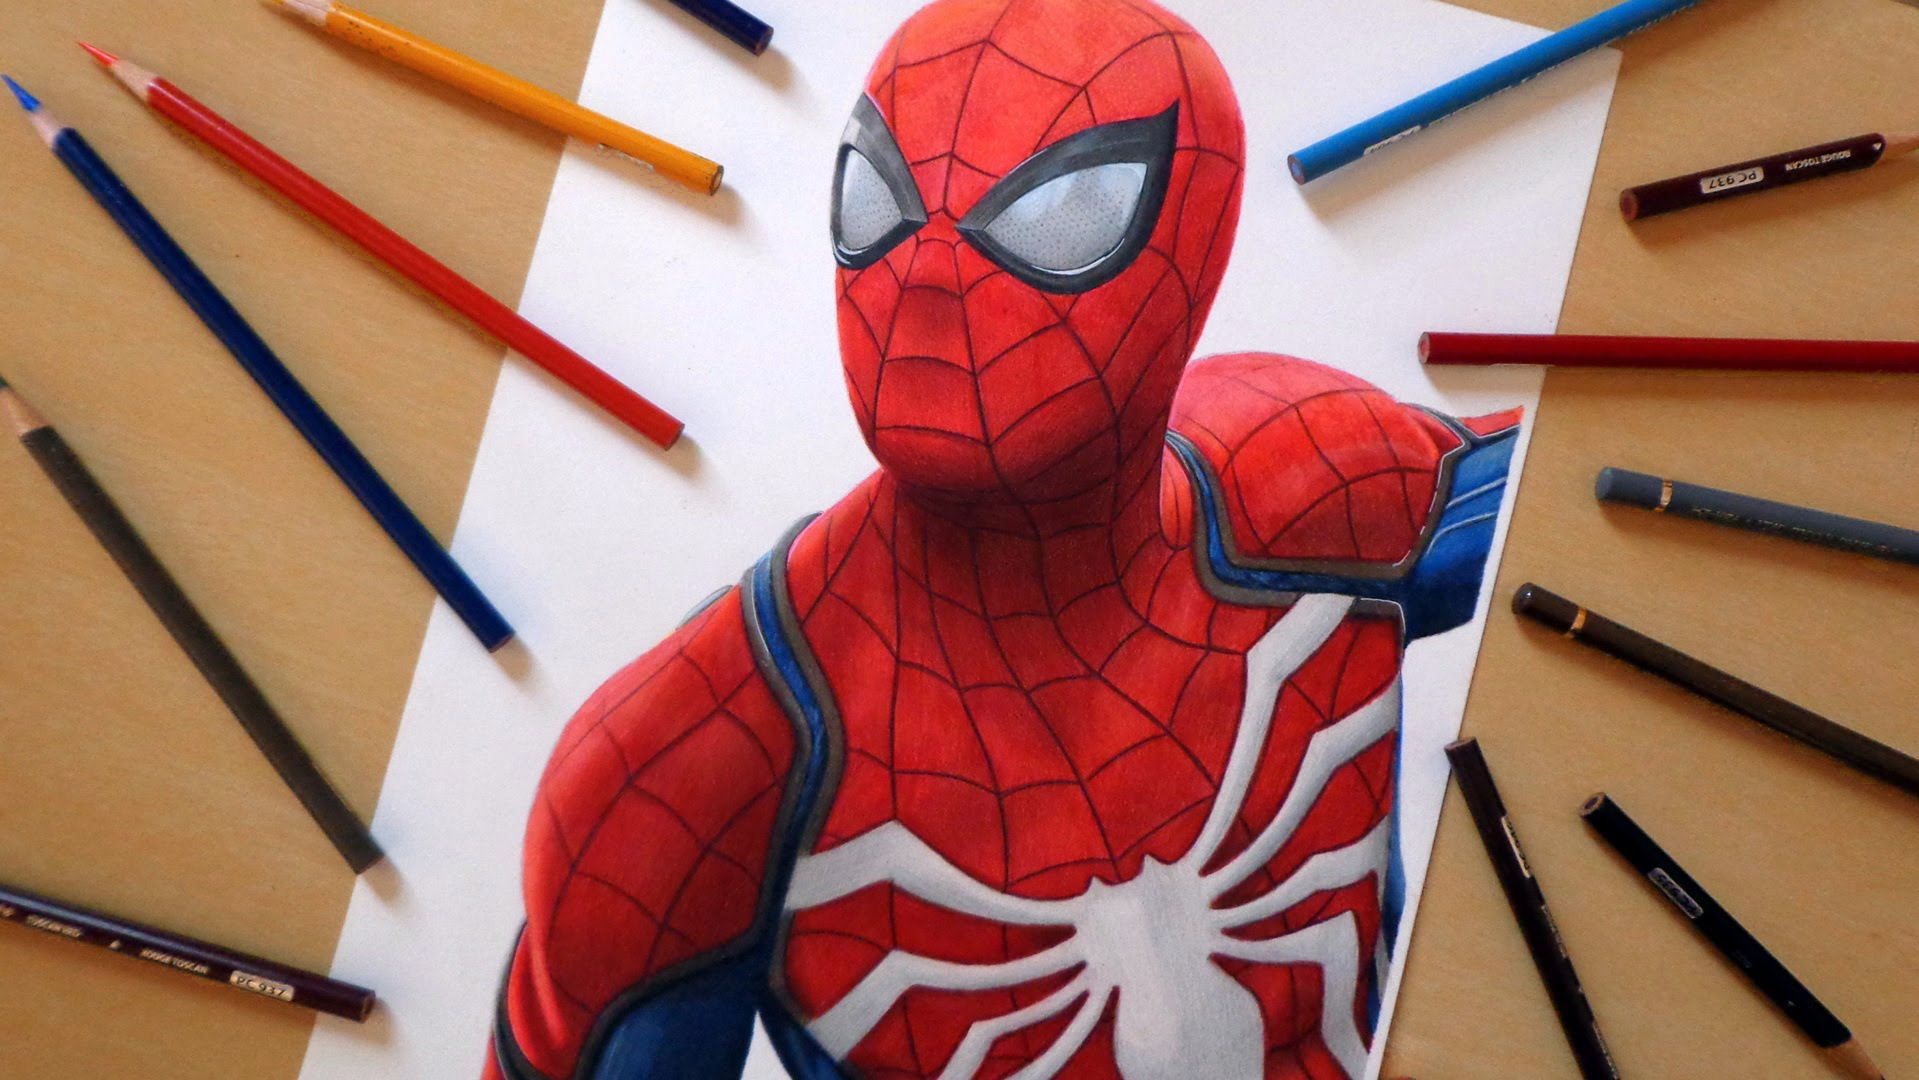 1919x1080 Speed Drawing Spider Man (Playstation 4 Game)